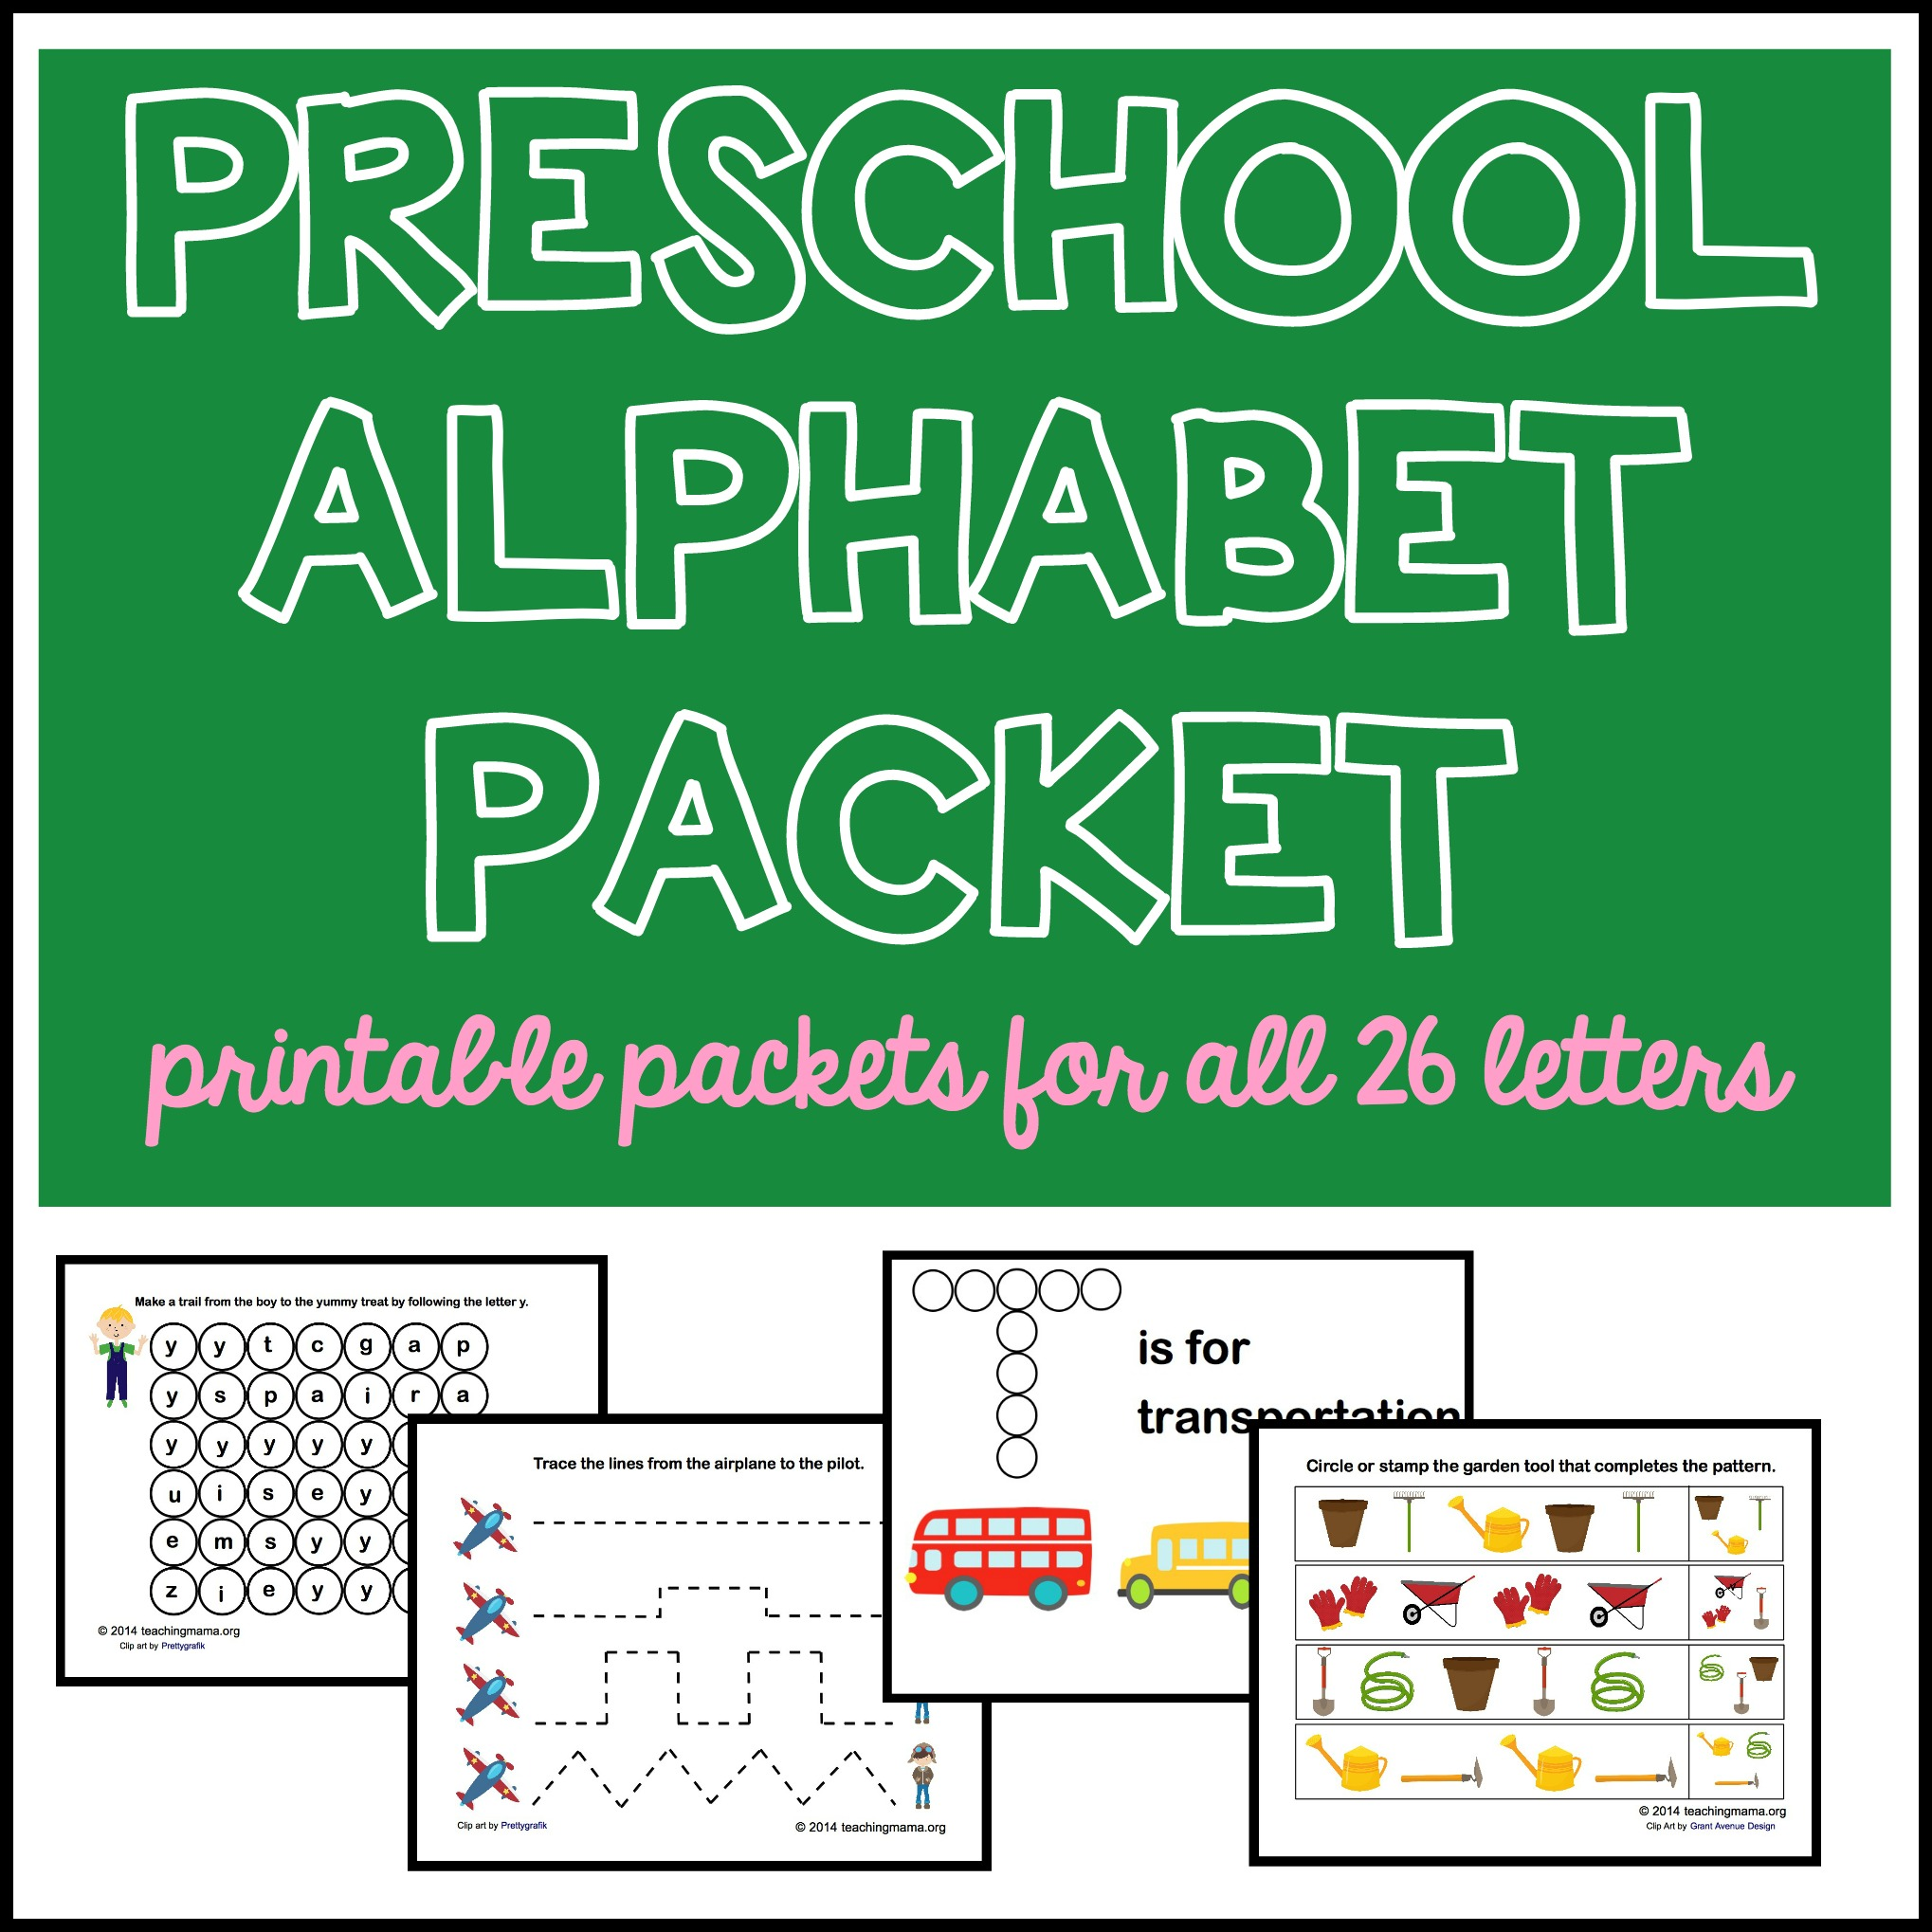 Preschool Alphabet Packet